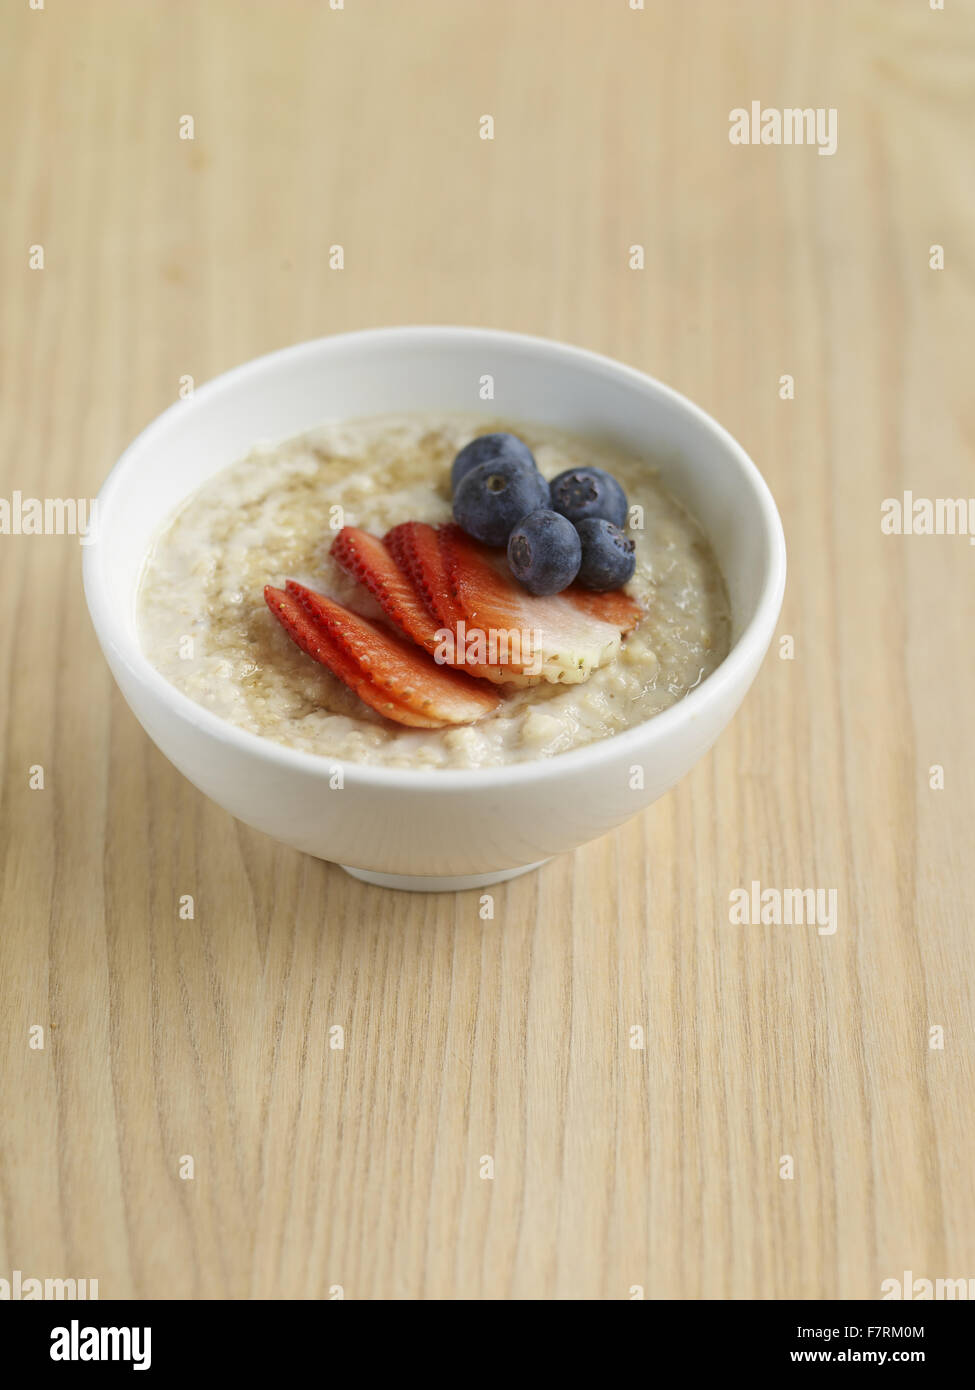 Porridge photographed for the 2015 National Trust Summer Cookbook. - Stock Image